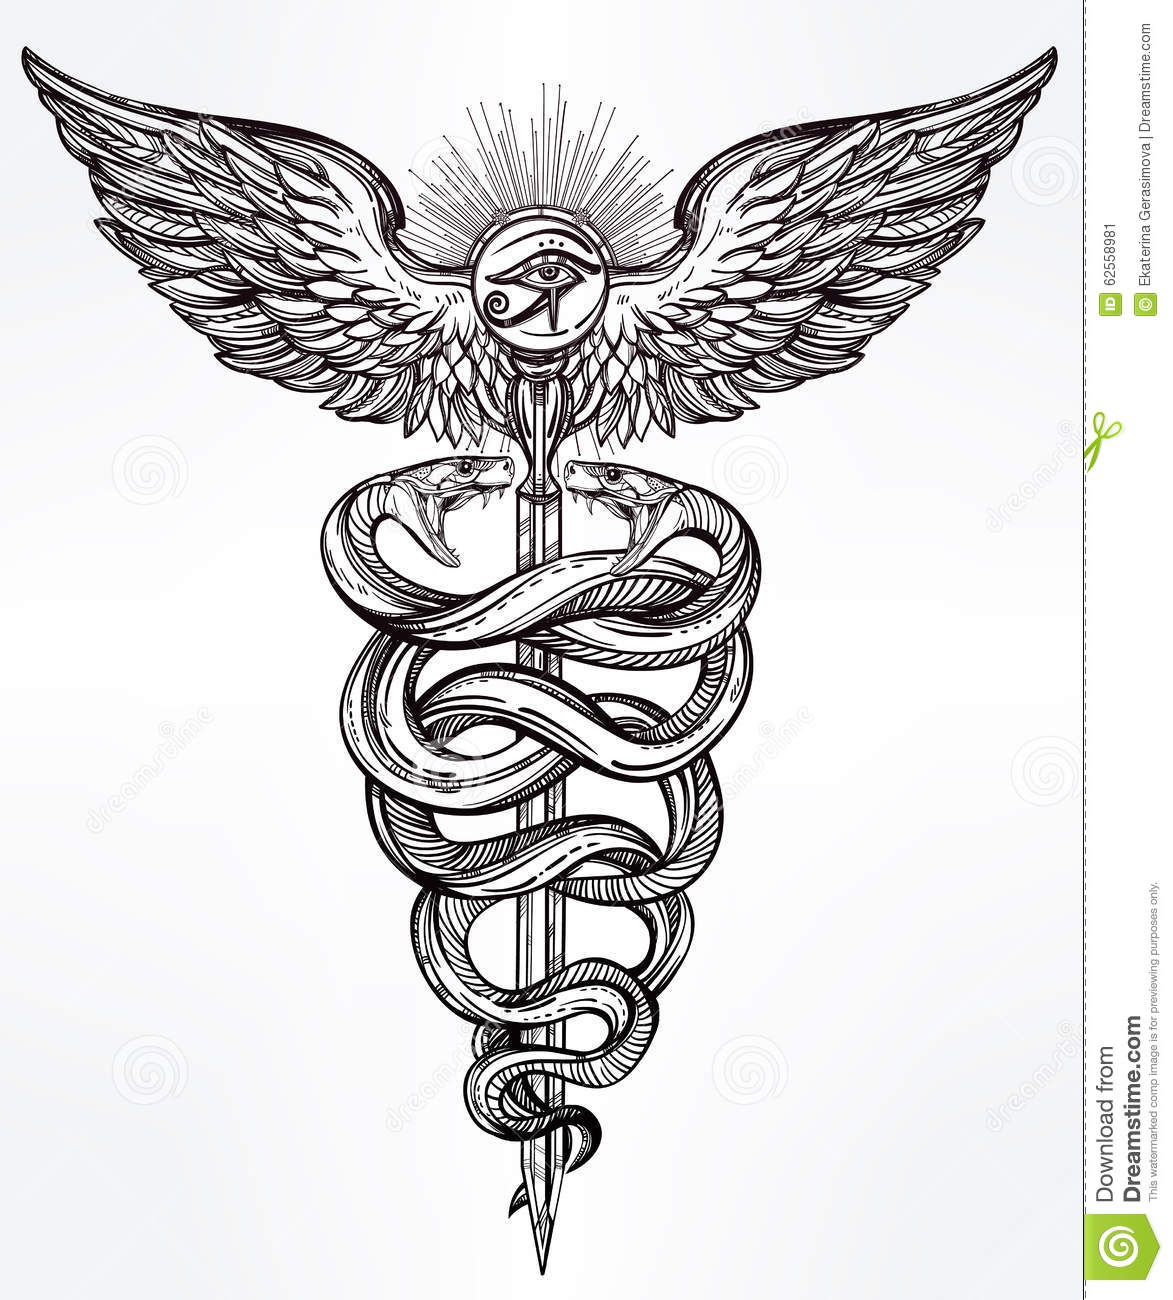 Caduceus Symbol Of God Mercury Illustration. Stock Vector ...